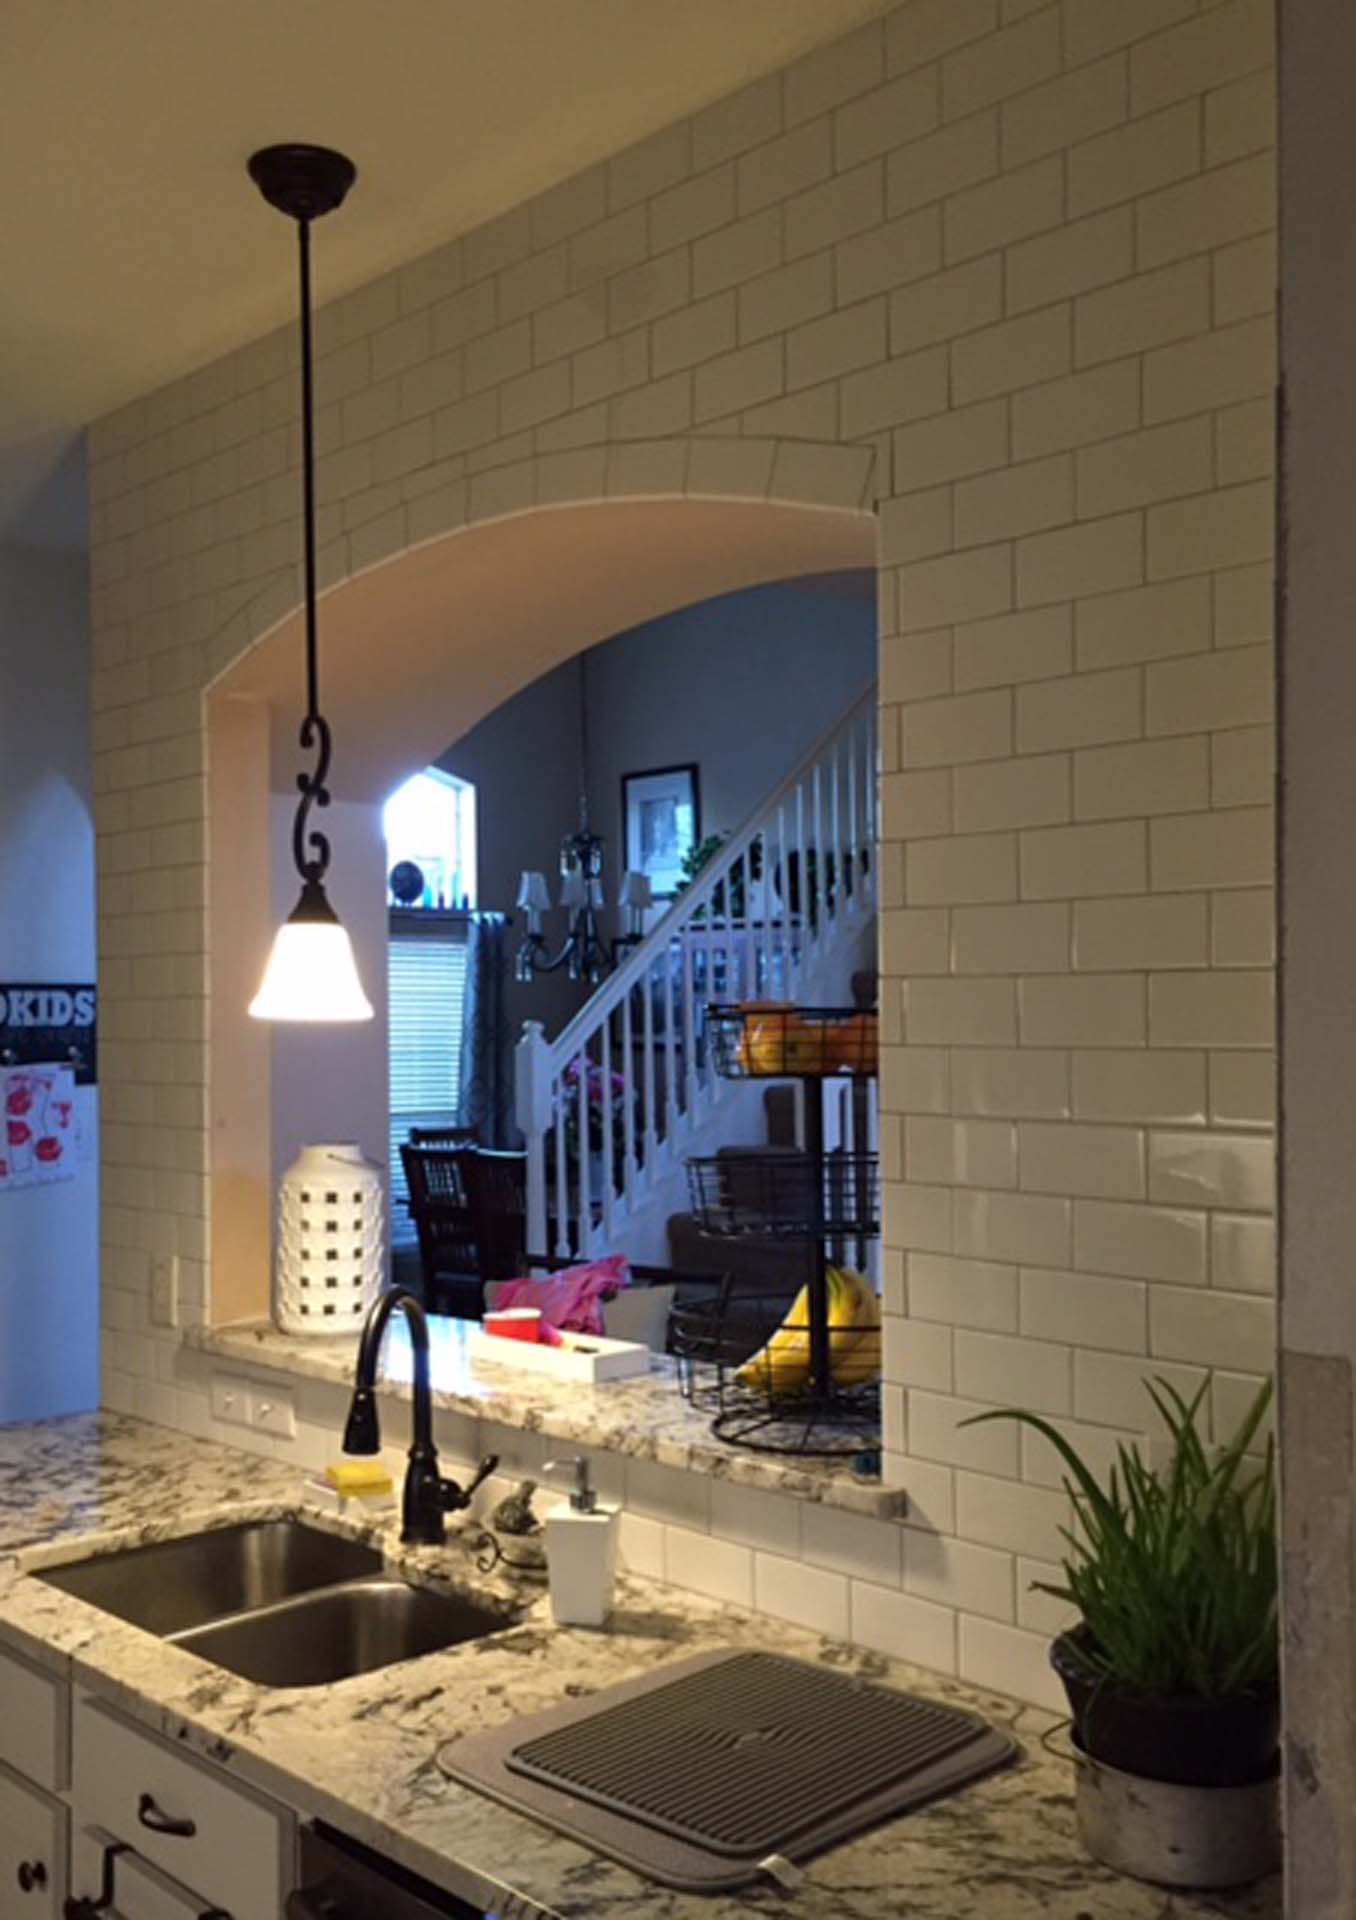 1 Kitchen tiled archway